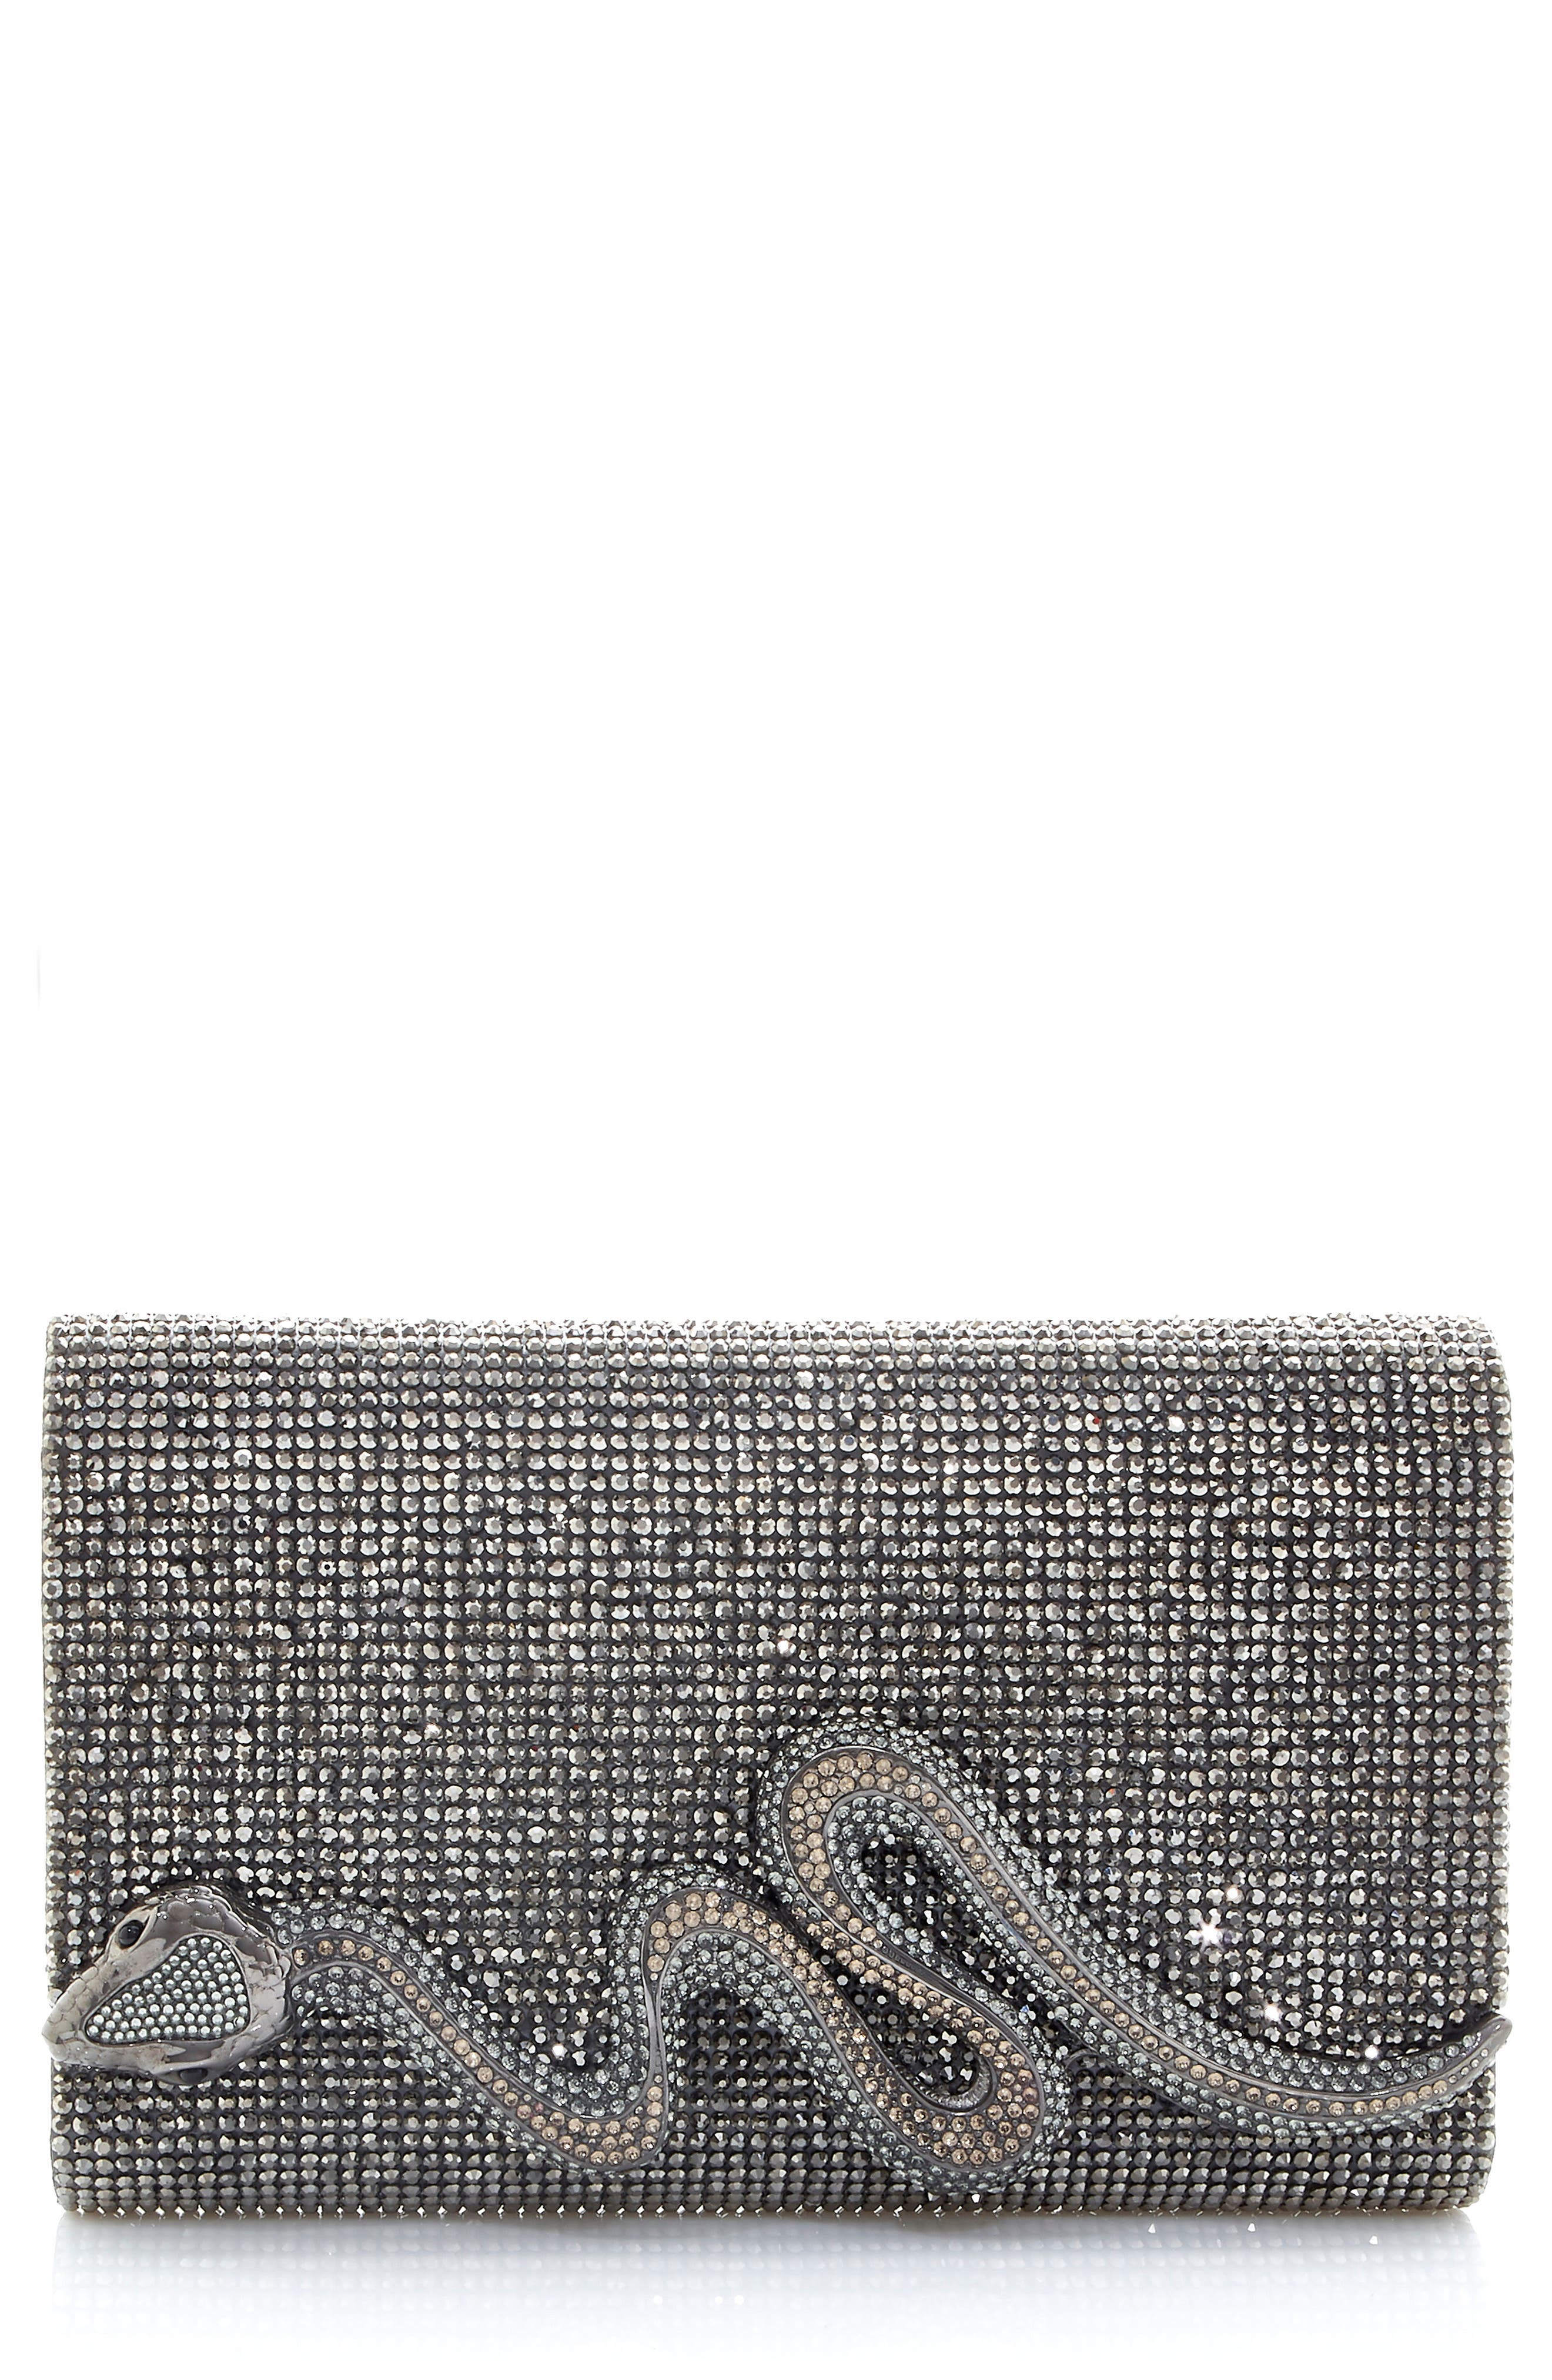 Couture Serpent Crystal Clutch